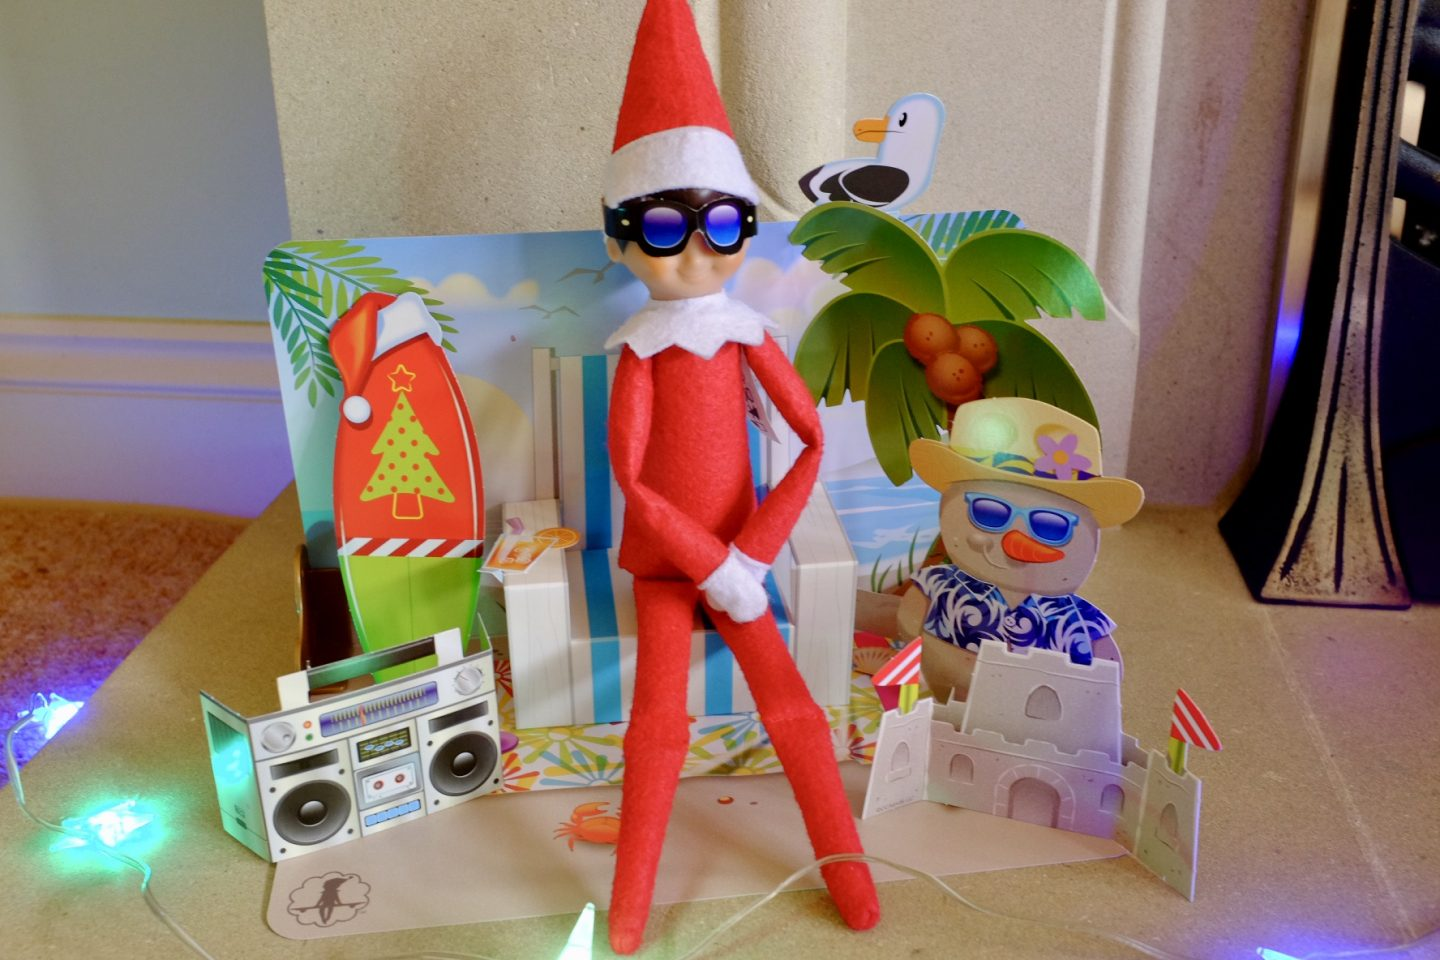 Elf Arrival Ideas on December 1st – with Elf on the Shelf | AD